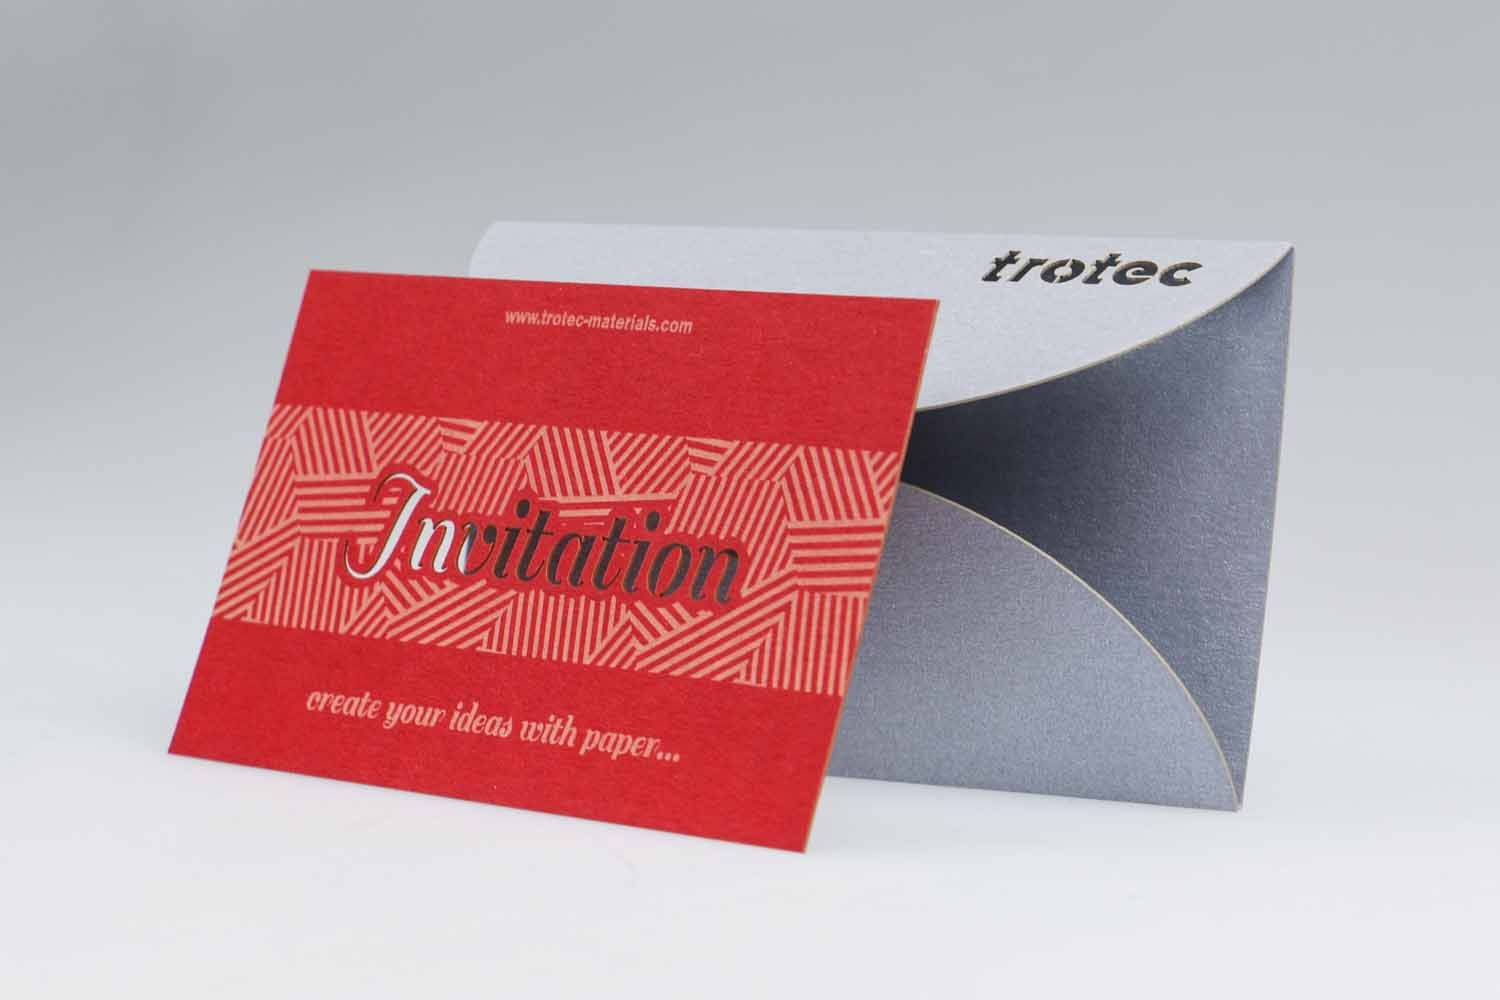 laser paper combines printing, engraving and cutting